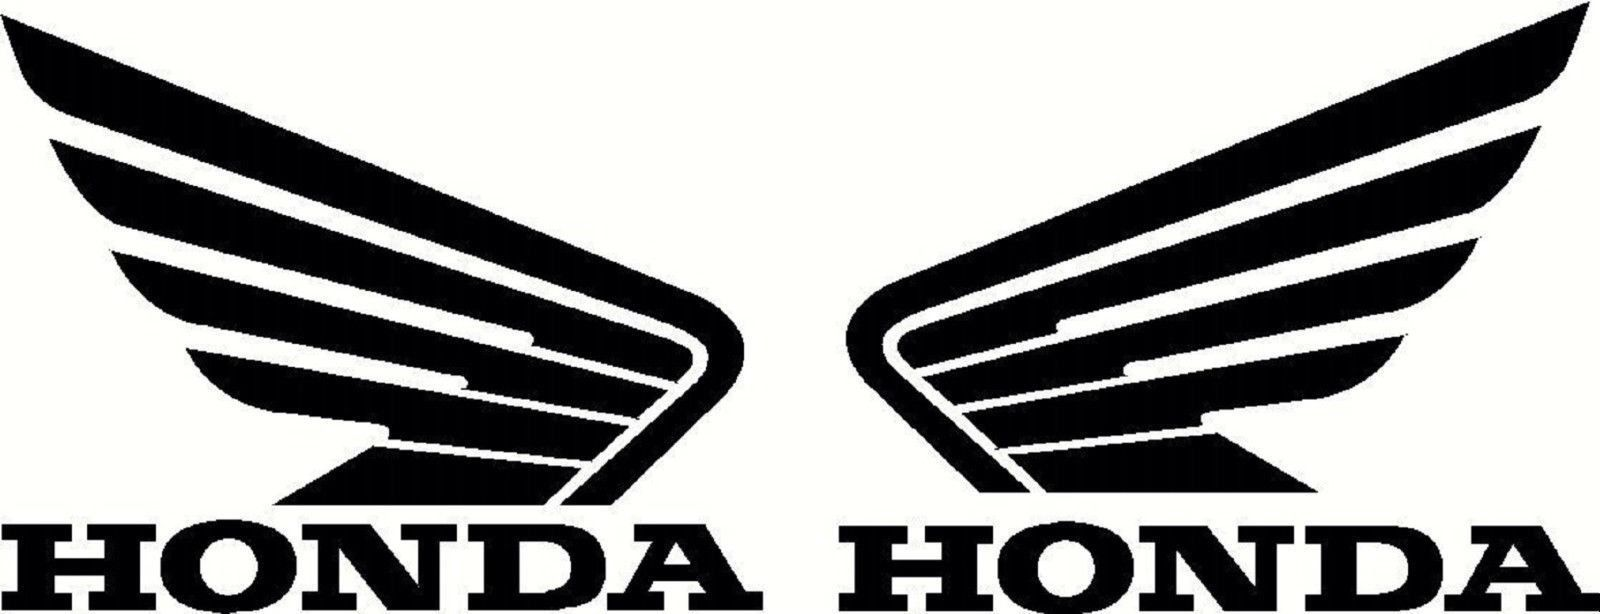 Honda Wings Set Vinyl Decal Atv Quad Tank And 26 Similar Items. Dia De Los Muertos Stickers. Pulled Plane Banners. Creative Building Signs Of Stroke. Child Ppt Signs. Corrugated Plastic Yard Signs. Tow Decals. Chalk Pastel Murals. Griha Pravesh Logo